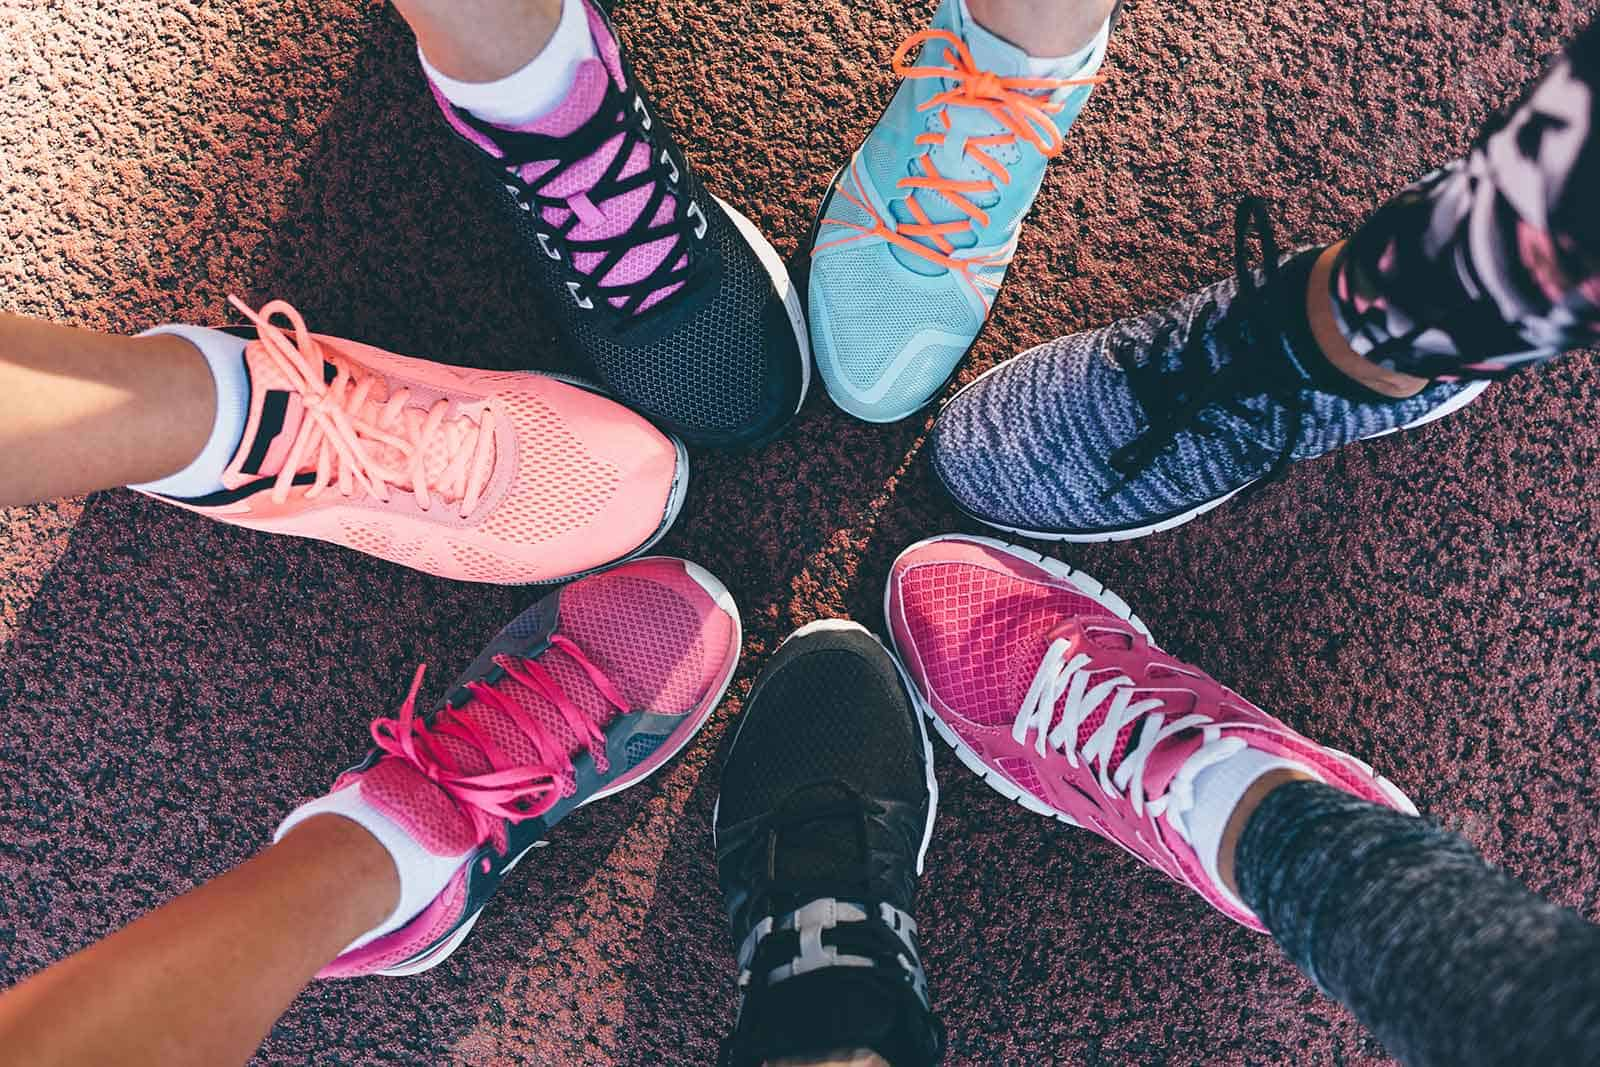 Diabetes and Healthy Feet: What You Need to Know